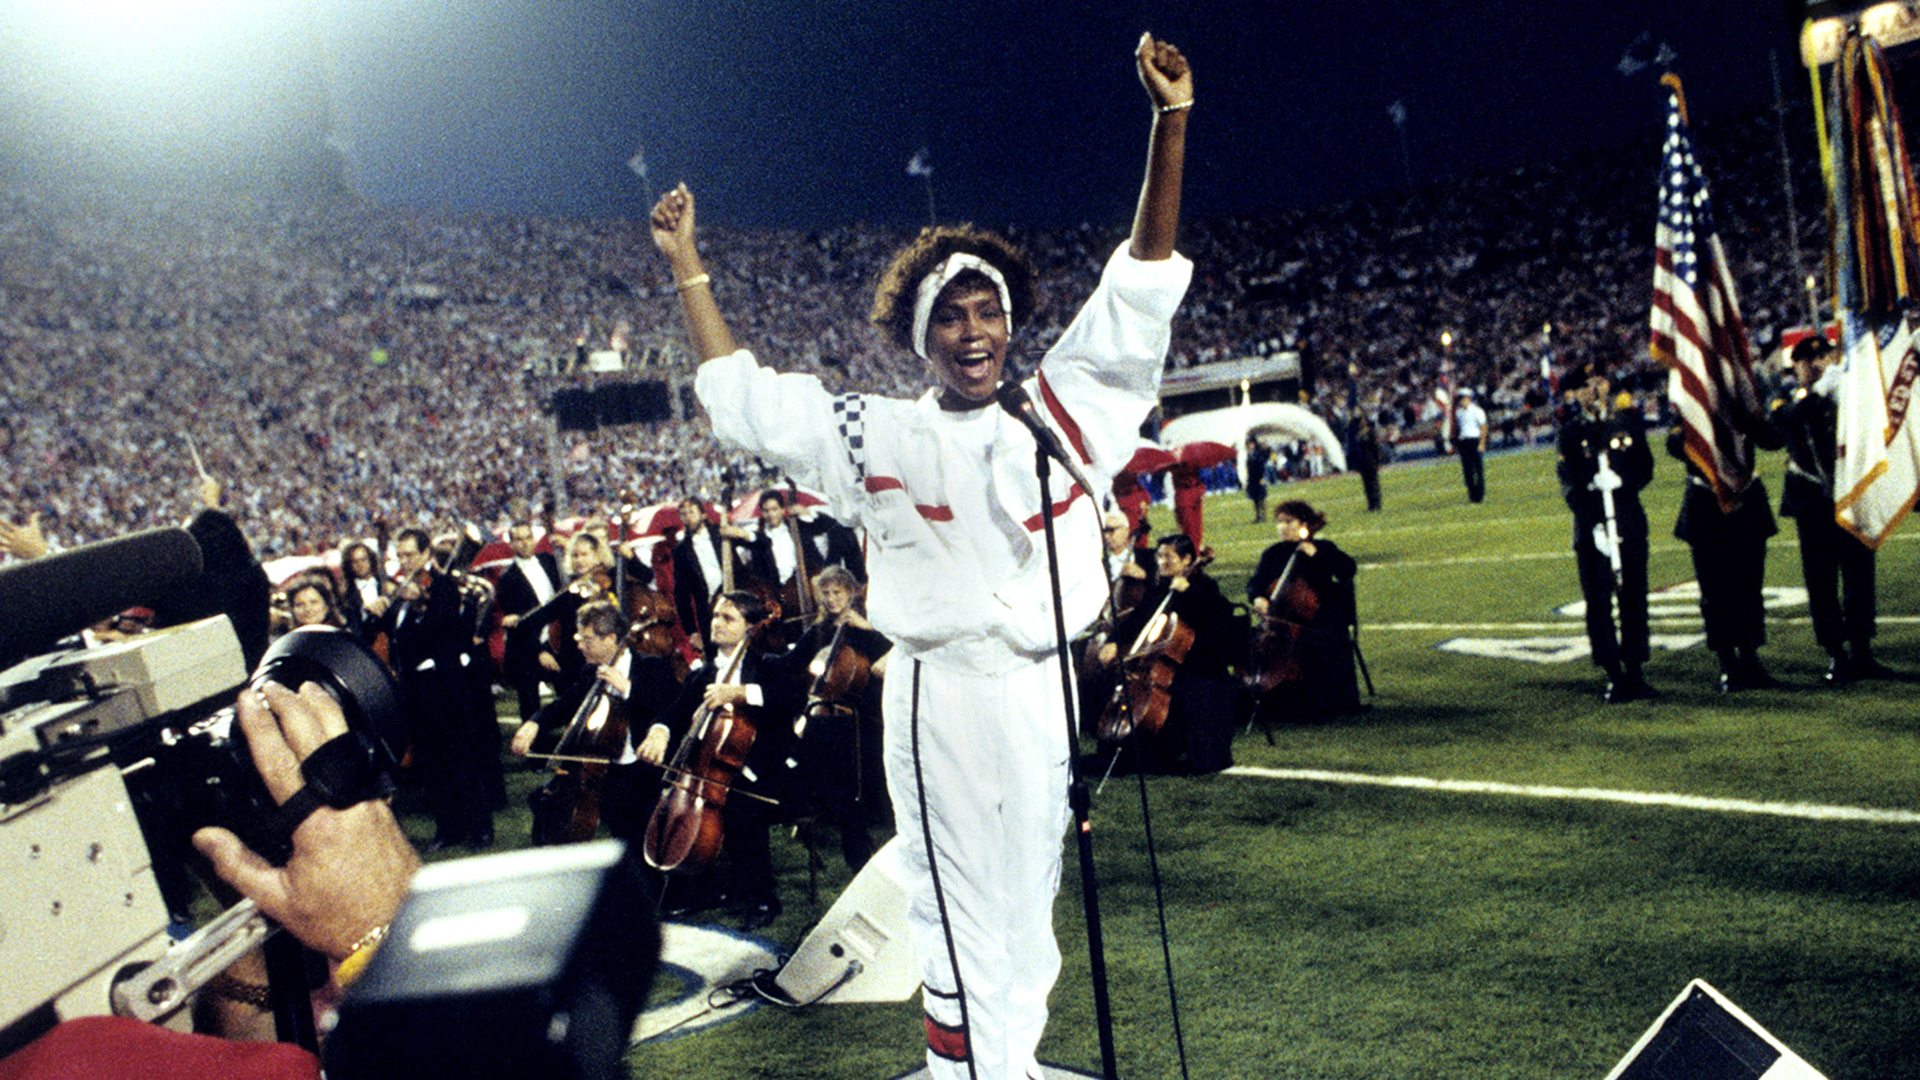 Singer Whitney Houston sings the National Anthem before a 20-19 New Giants wino ver the Buffalo Bills at Super Bowl XXV on January 27, 1991 at Houlihan's Stadium in Tampa Bay, Florida.  (Al Messerschmidt via AP)